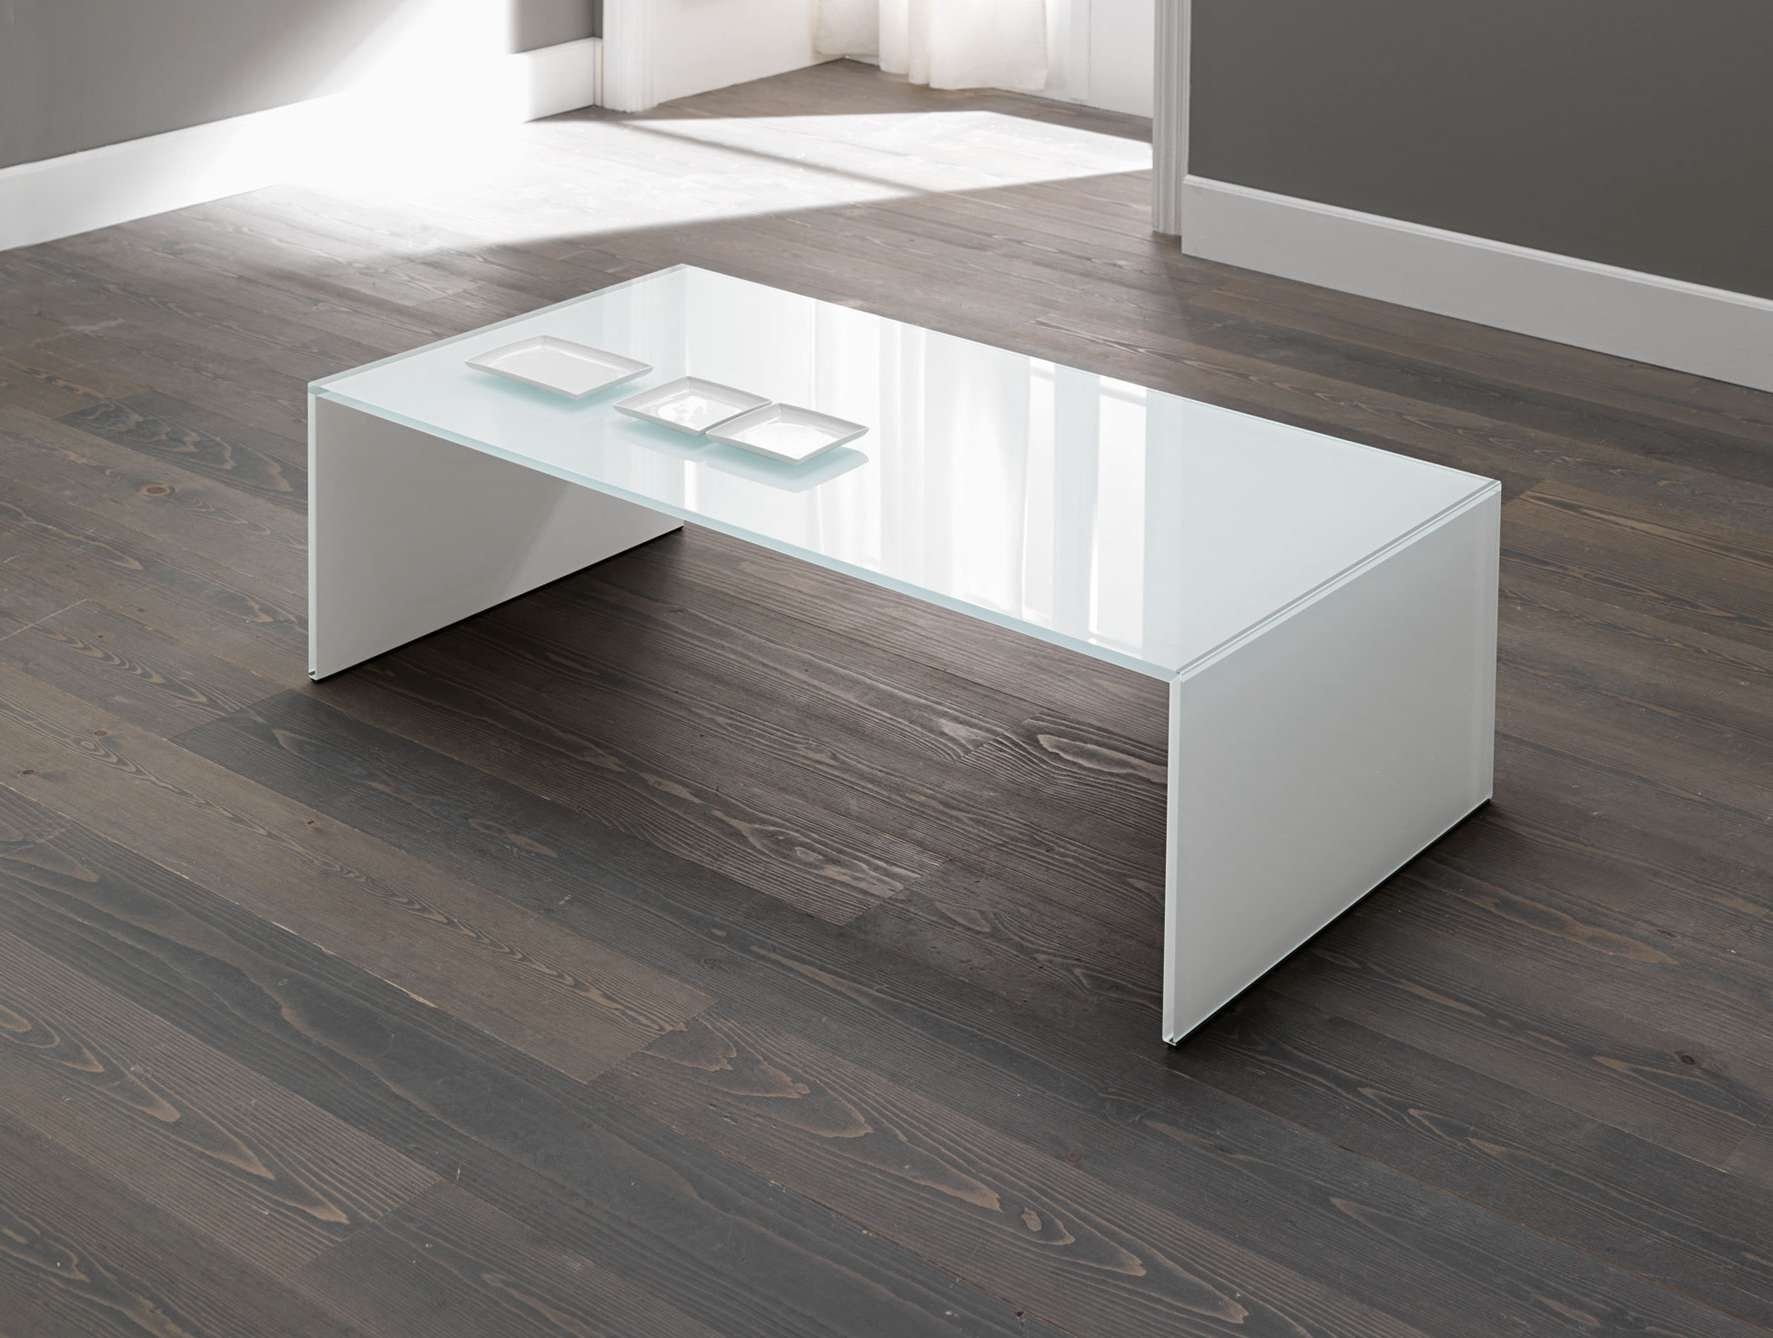 Choose Ideal Modern Glass Coffee Table – Matt And Jentry Home Design Intended For Current All Glass Coffee Tables (View 3 of 20)